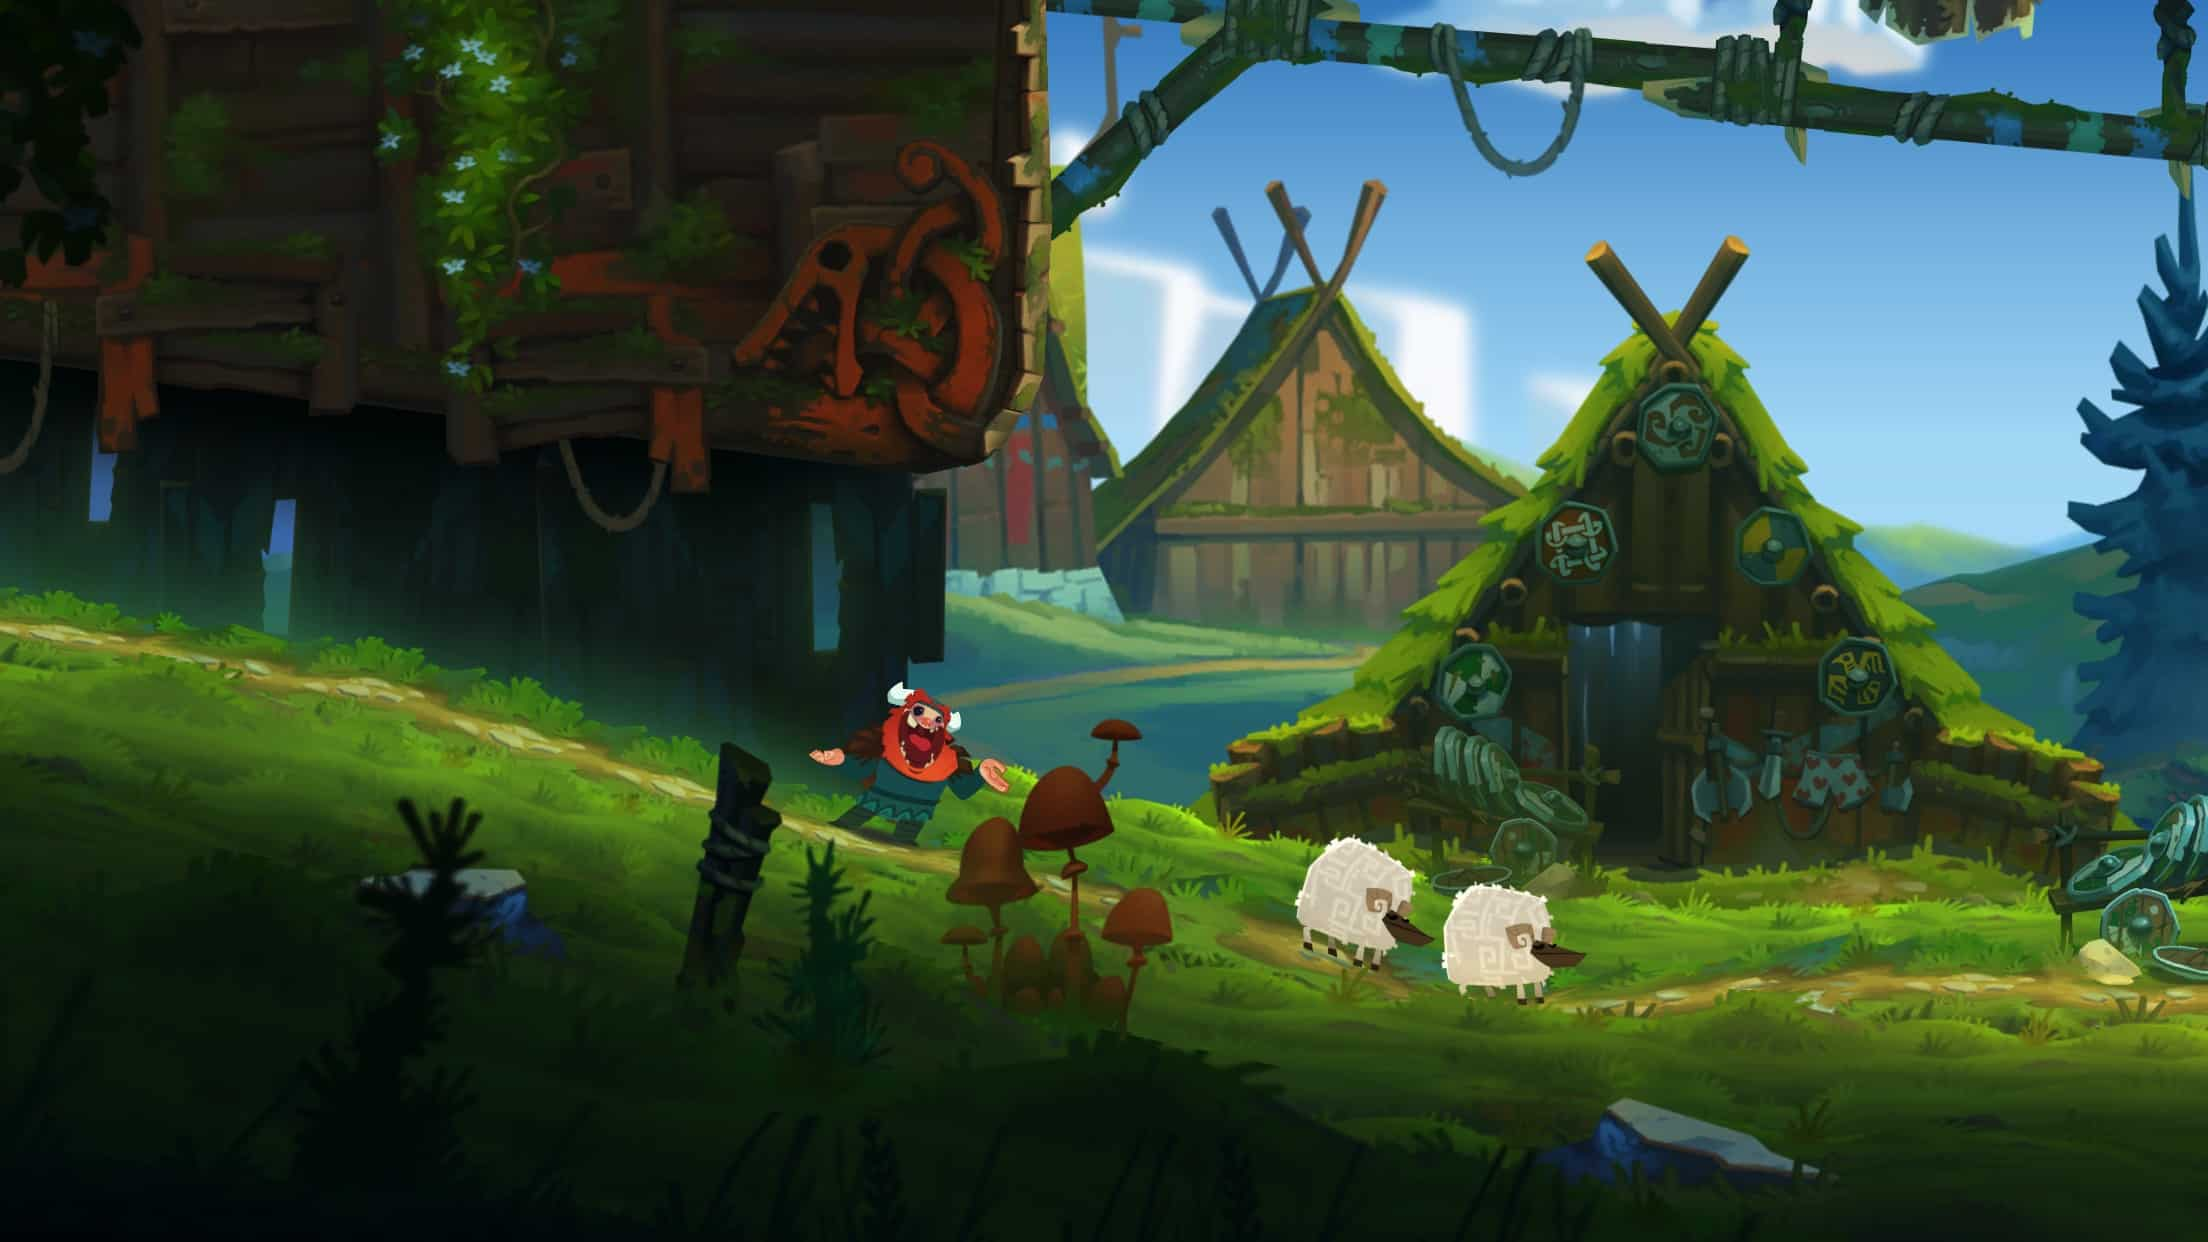 Oddmar is a Viking-themed platformer from the makers of